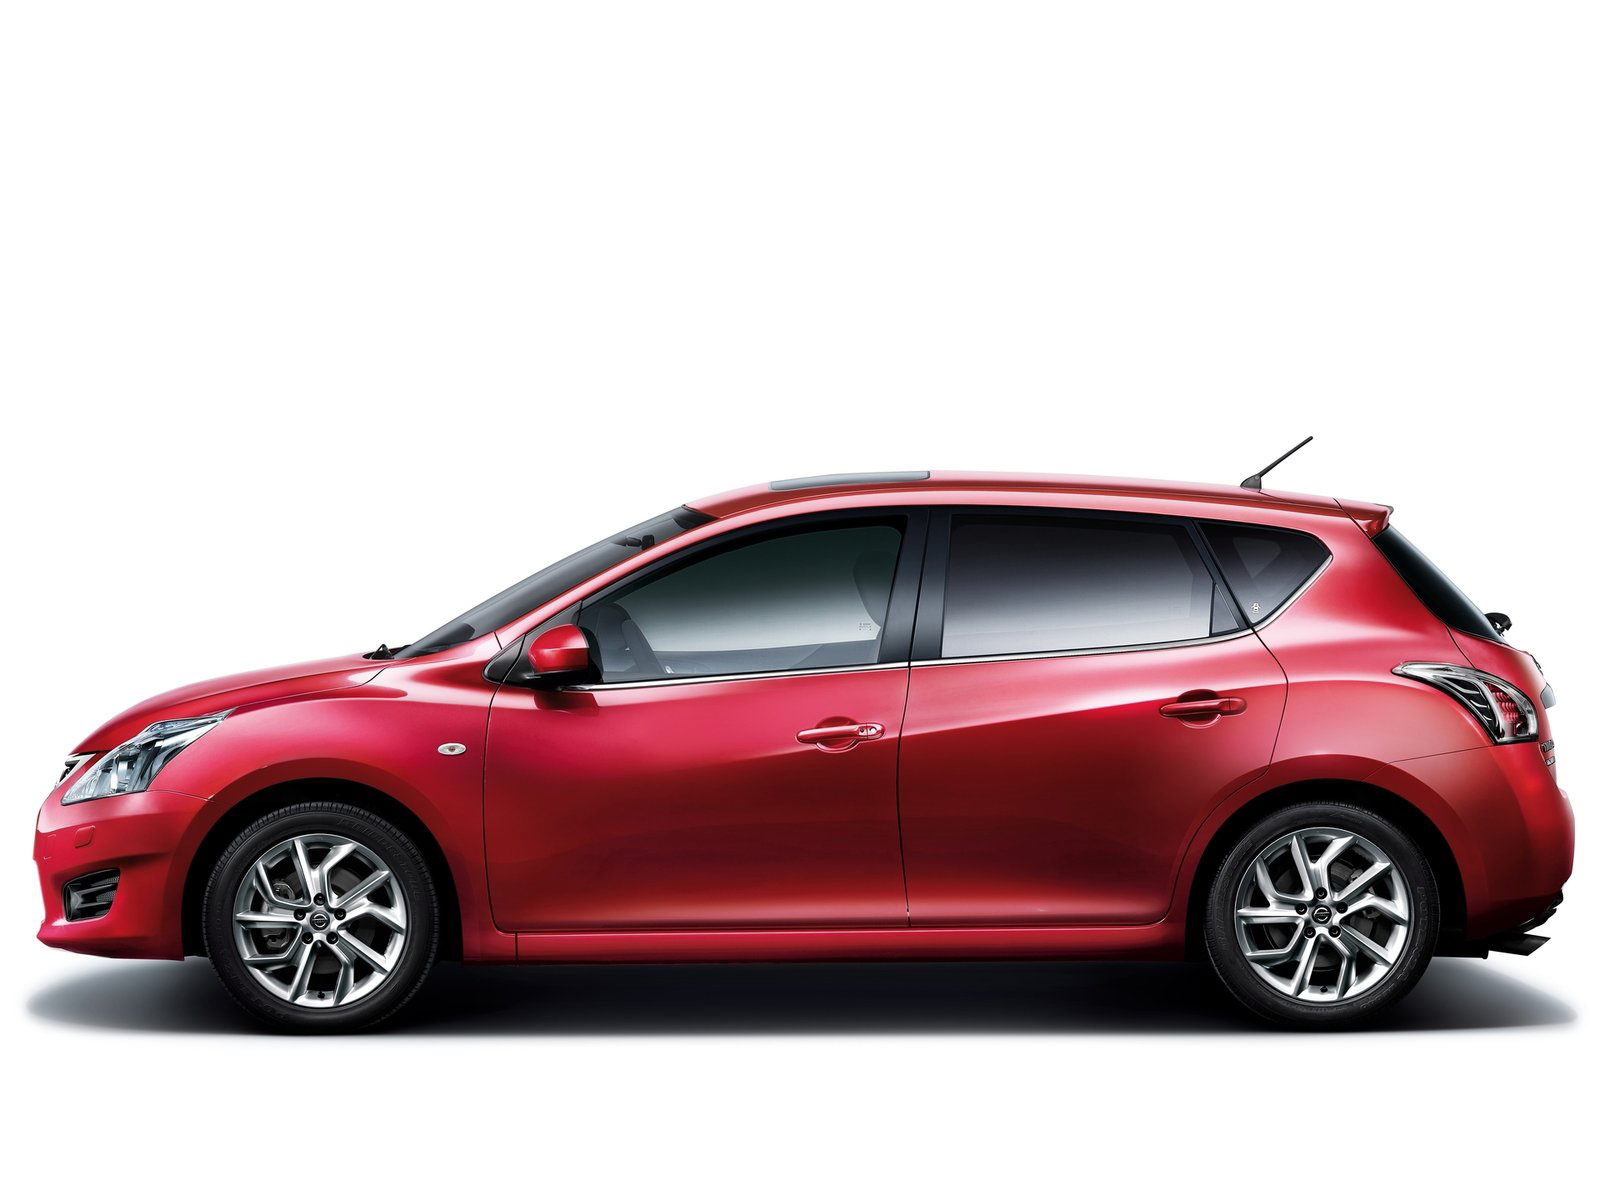 2012 NISSAN Tiida Japanese car wallpapers review